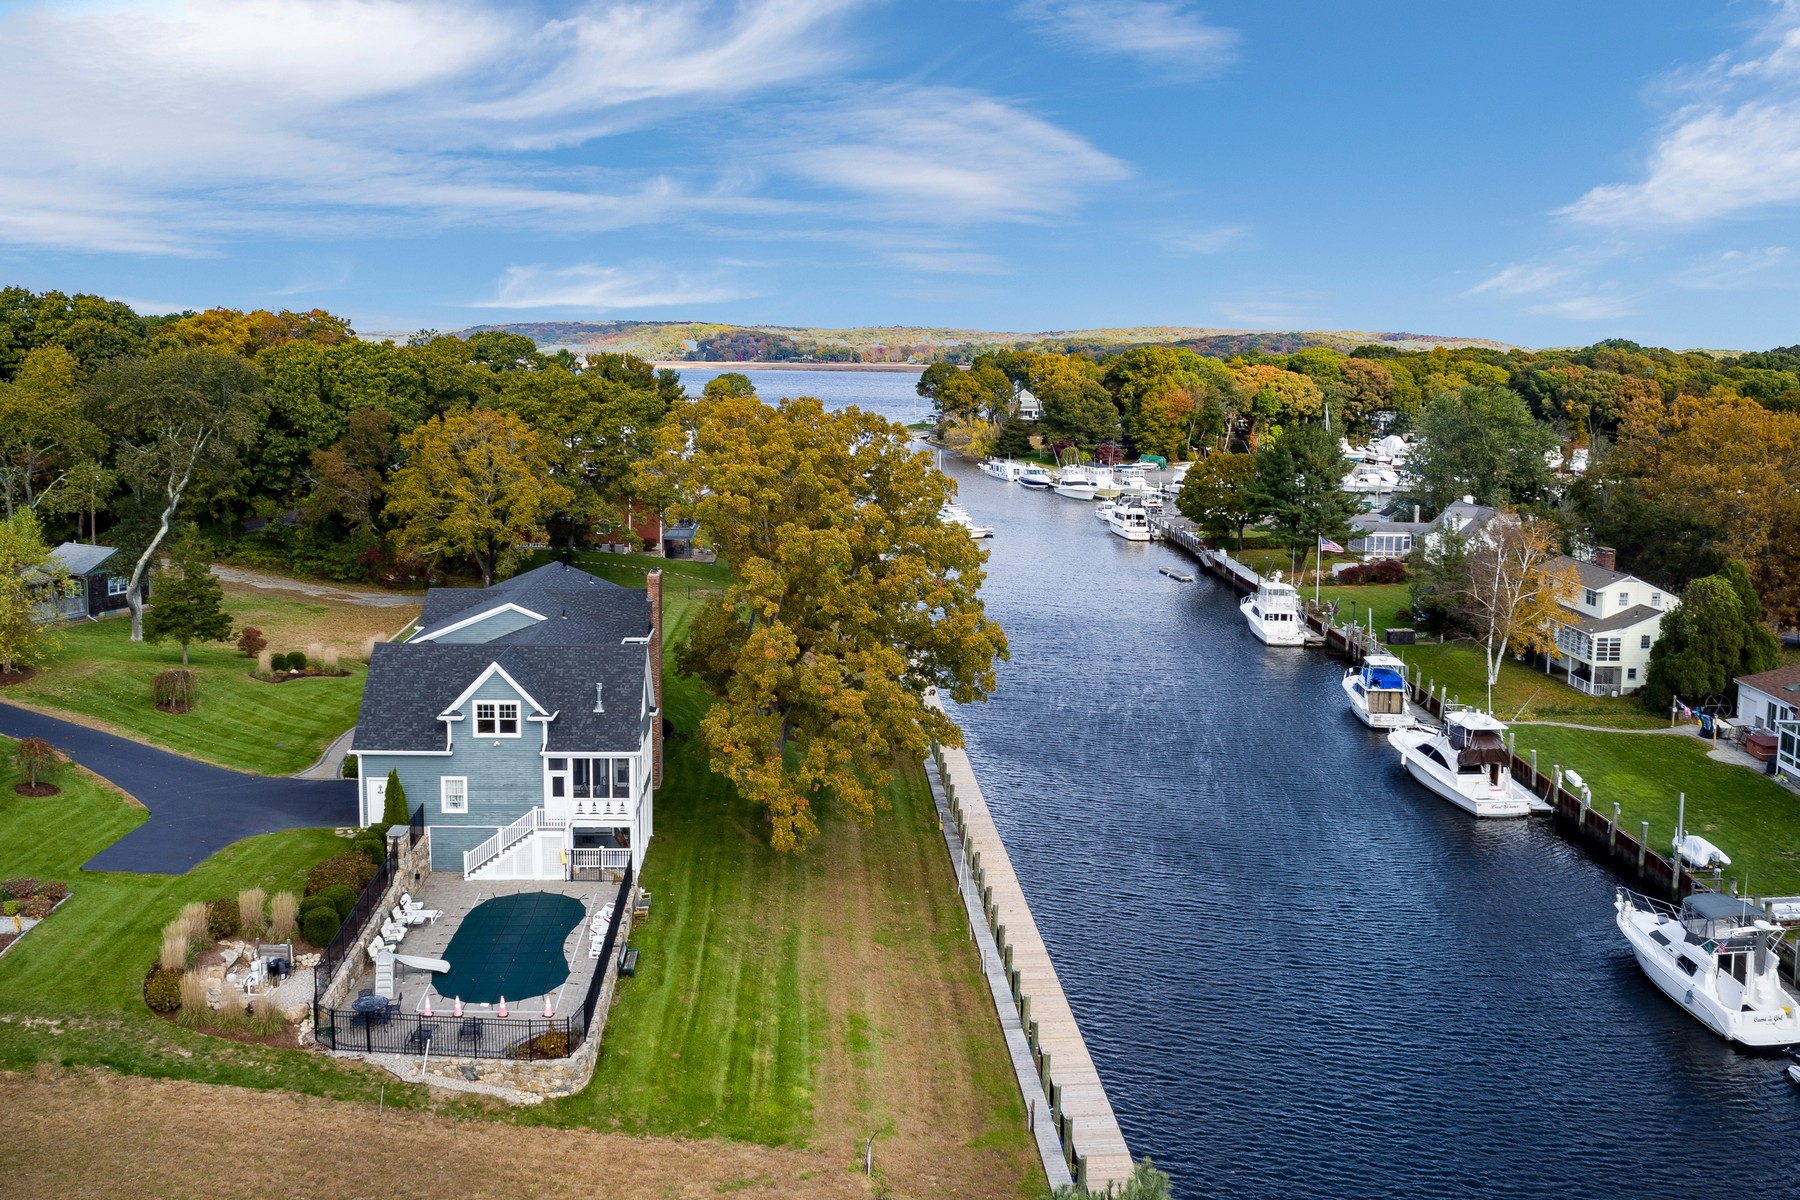 Single Family Homes for Sale at Waterfront Dream Come True! 16 Channelside Drive Old Saybrook, Connecticut 06475 United States